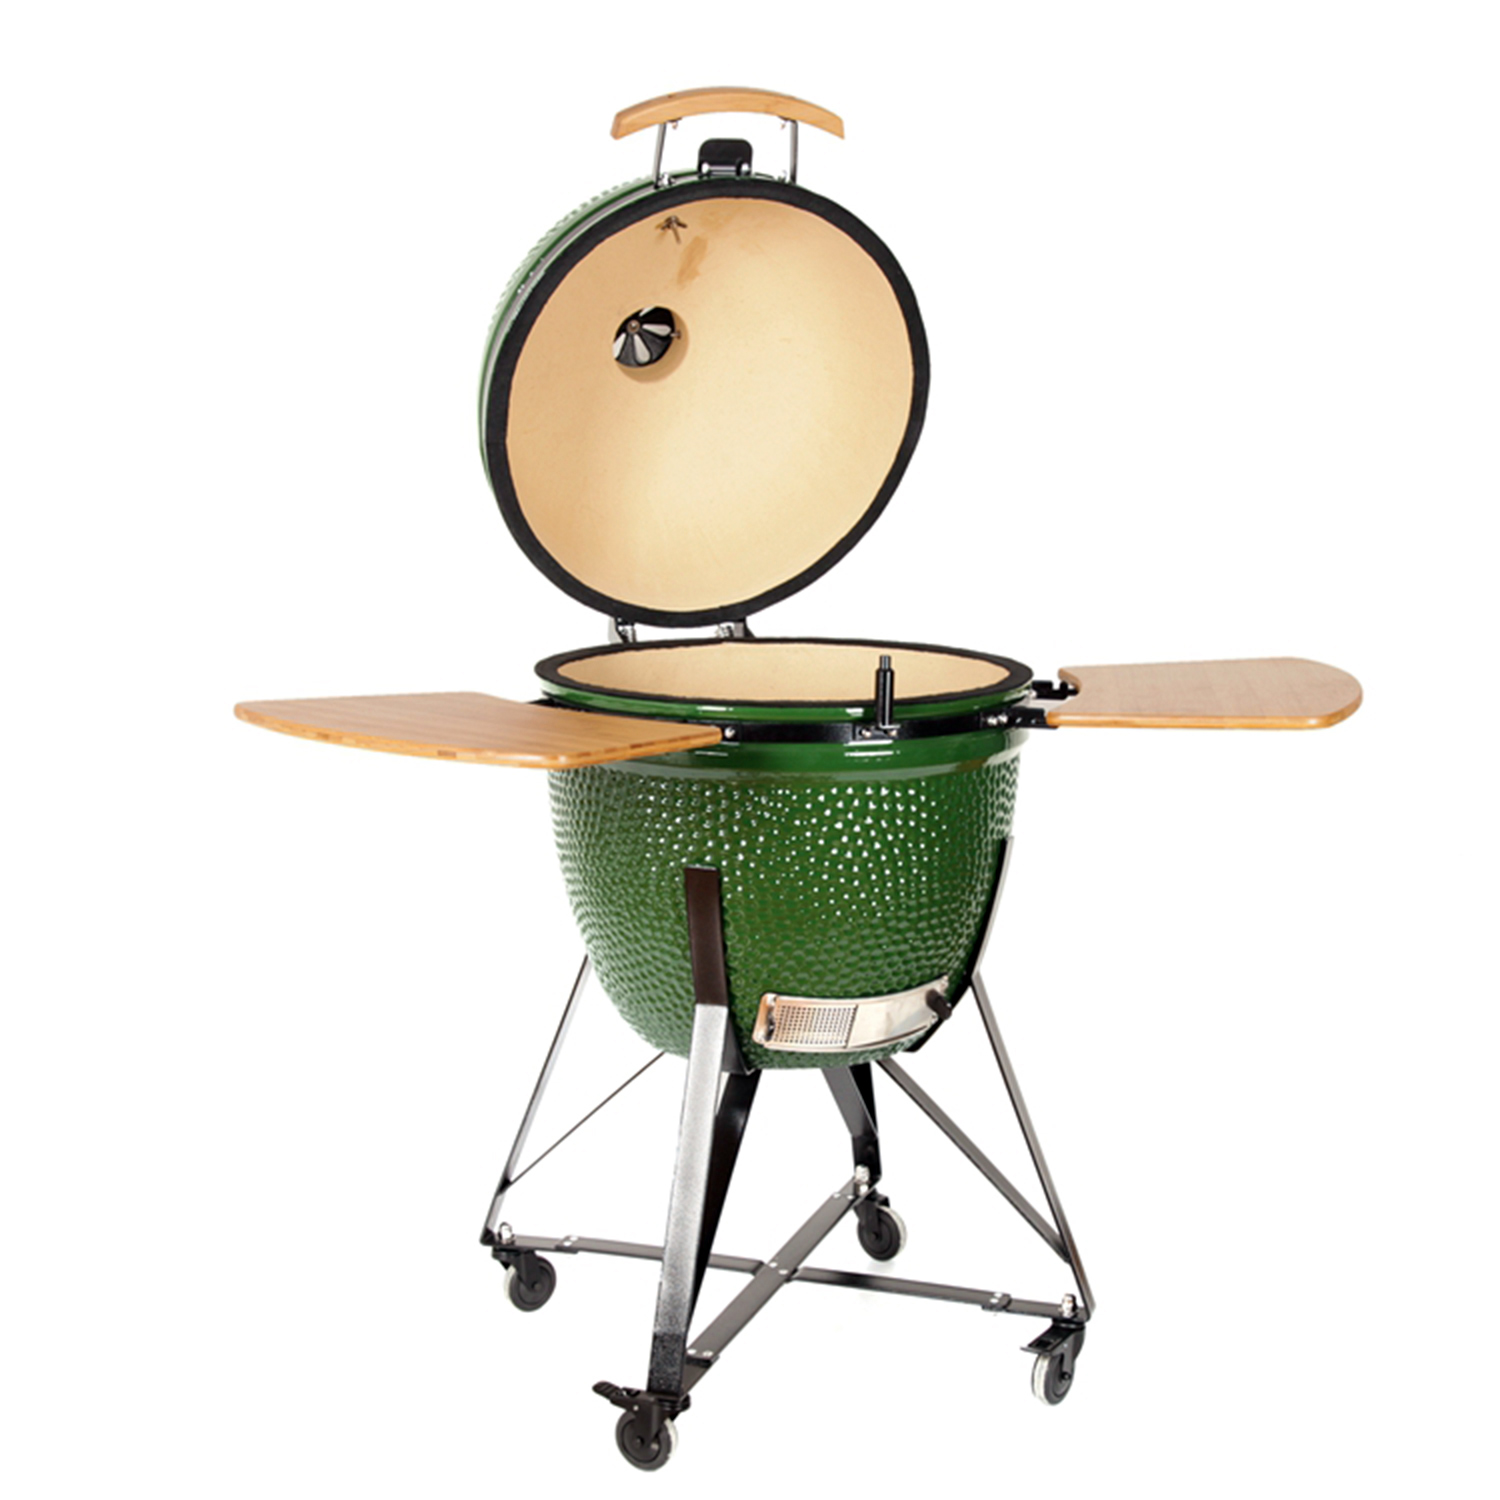 Green Egg kamado;Ceramic BBQ Grill